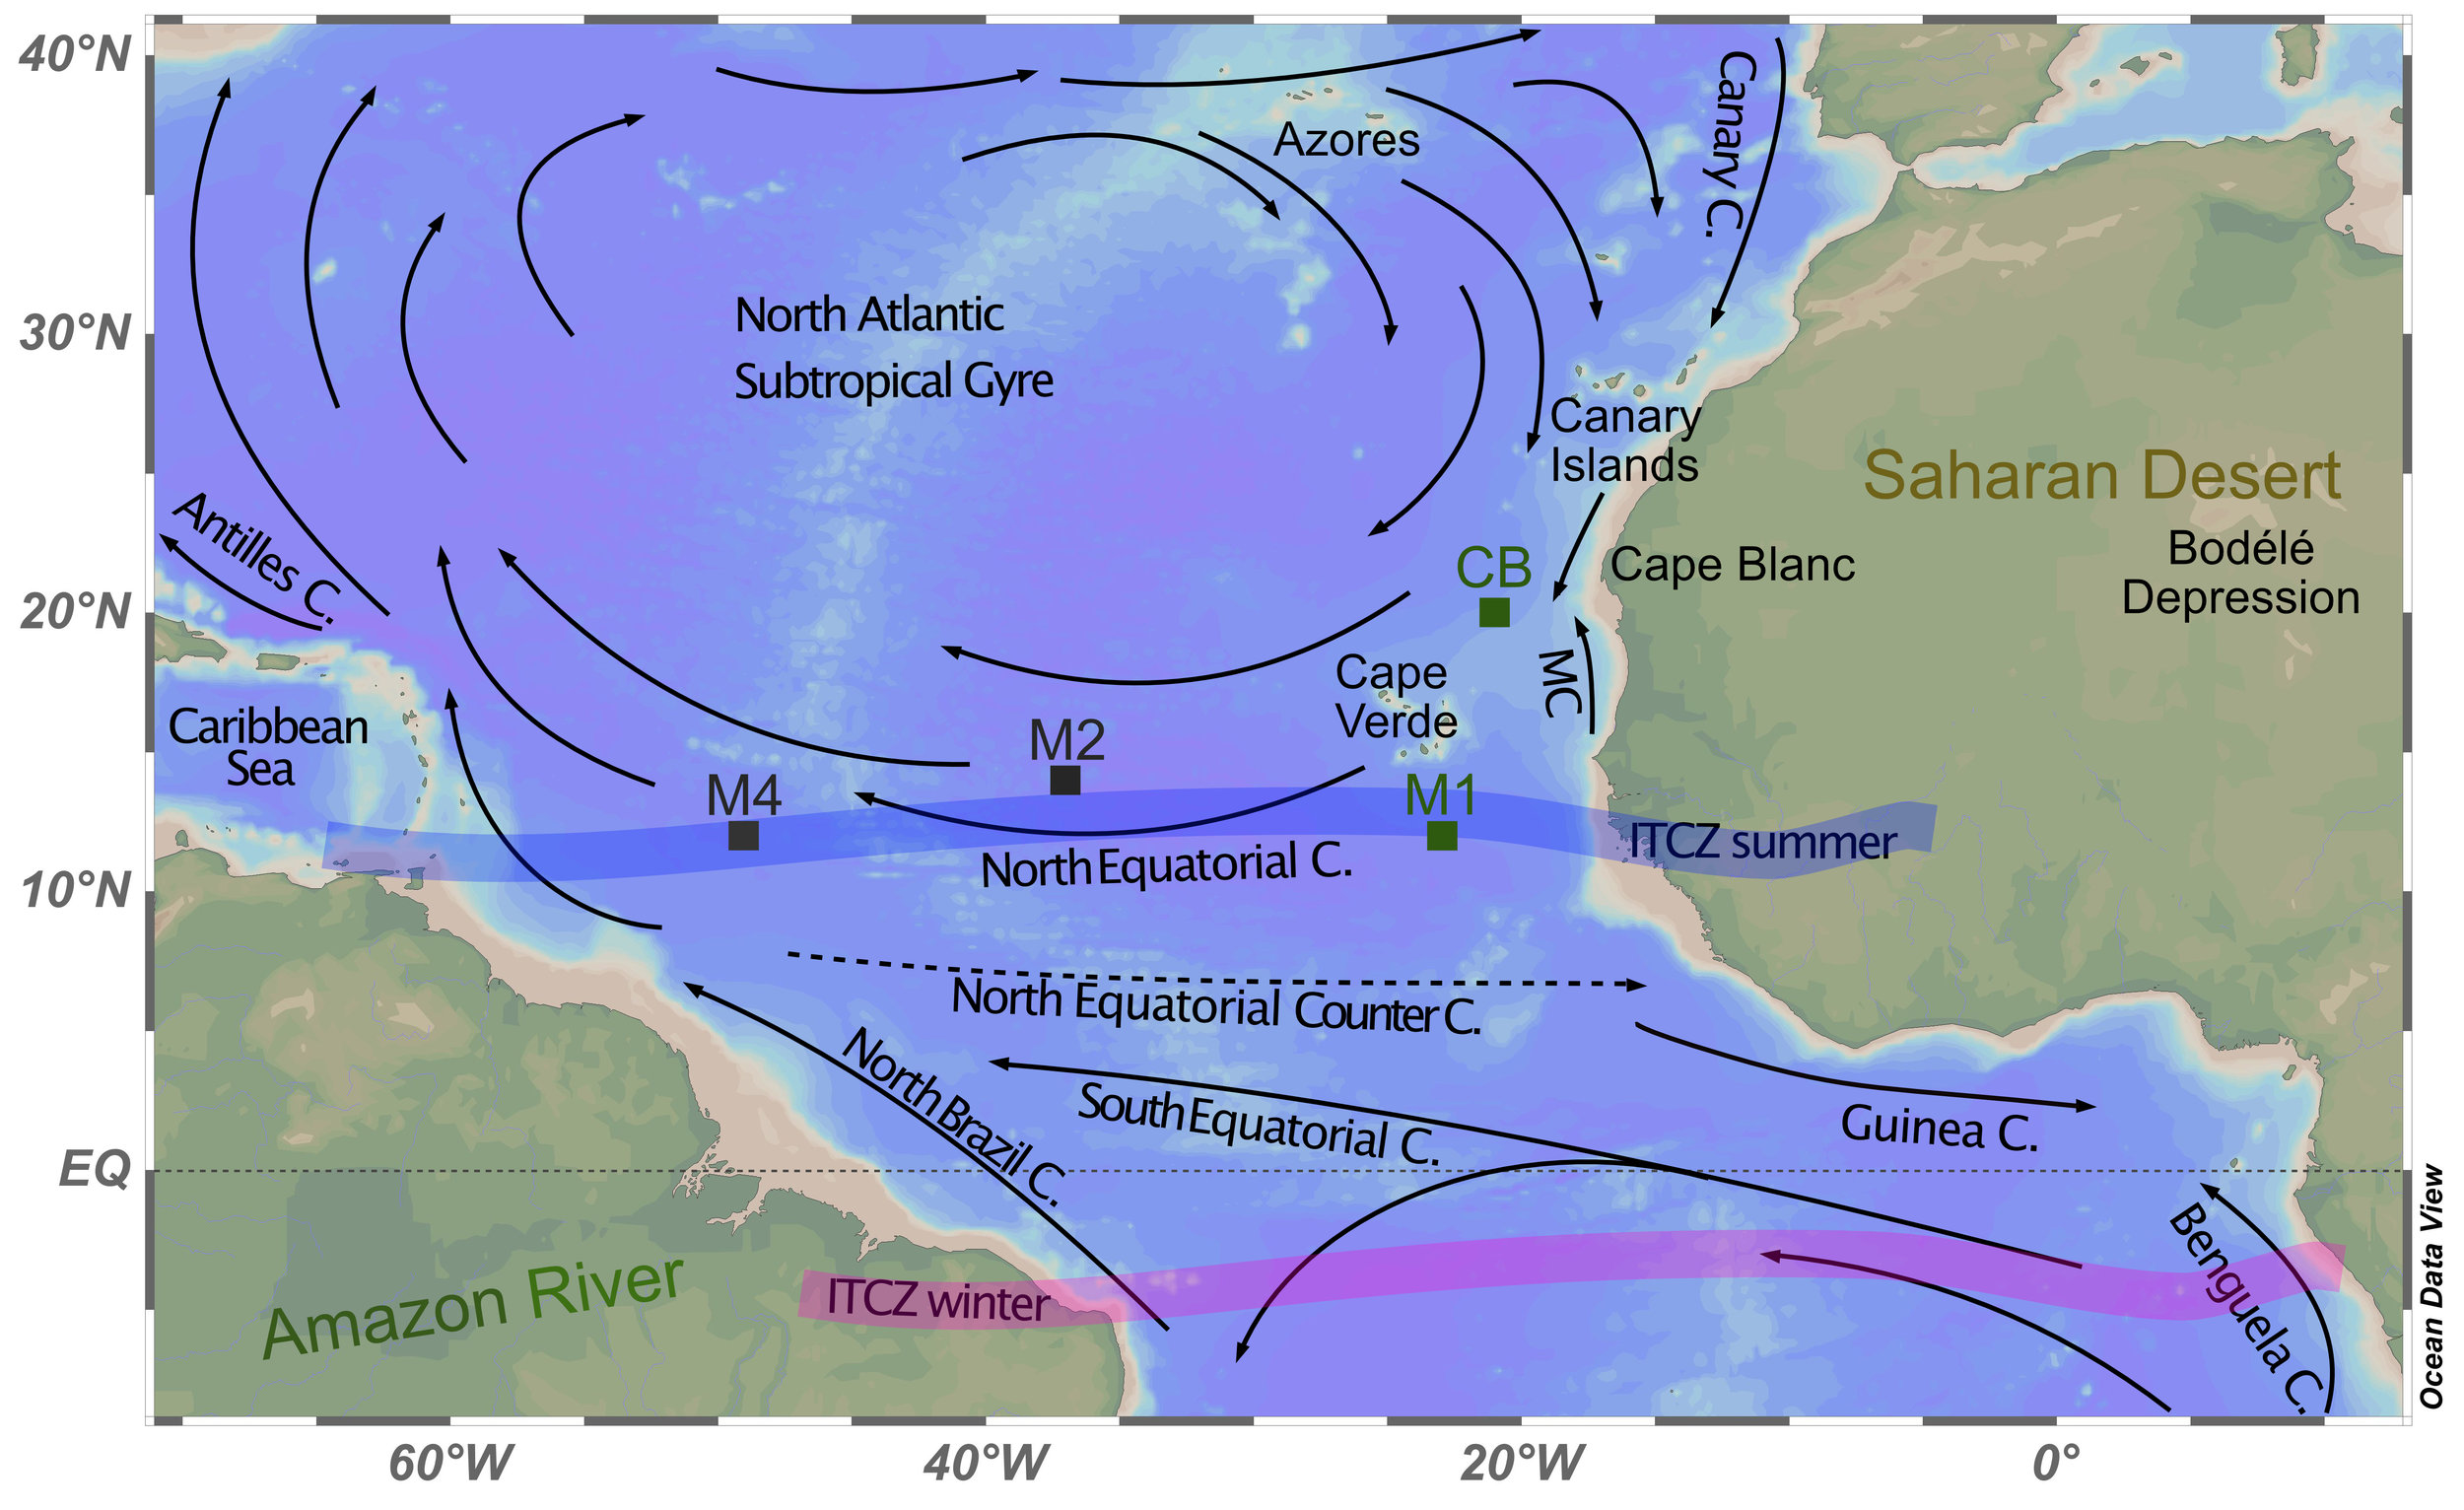 This is our study area, across the tropical North Atlantic. You can see the location of the sediment trap mooring sites (squares) and main surface currents (arrows) (adapted from Mann and Lazier, 2006 and Pelegrí et al., 2017). The seasonal migration of the Intertropical Convergence Zone was schematically drawn according to Basha et al. (2015).